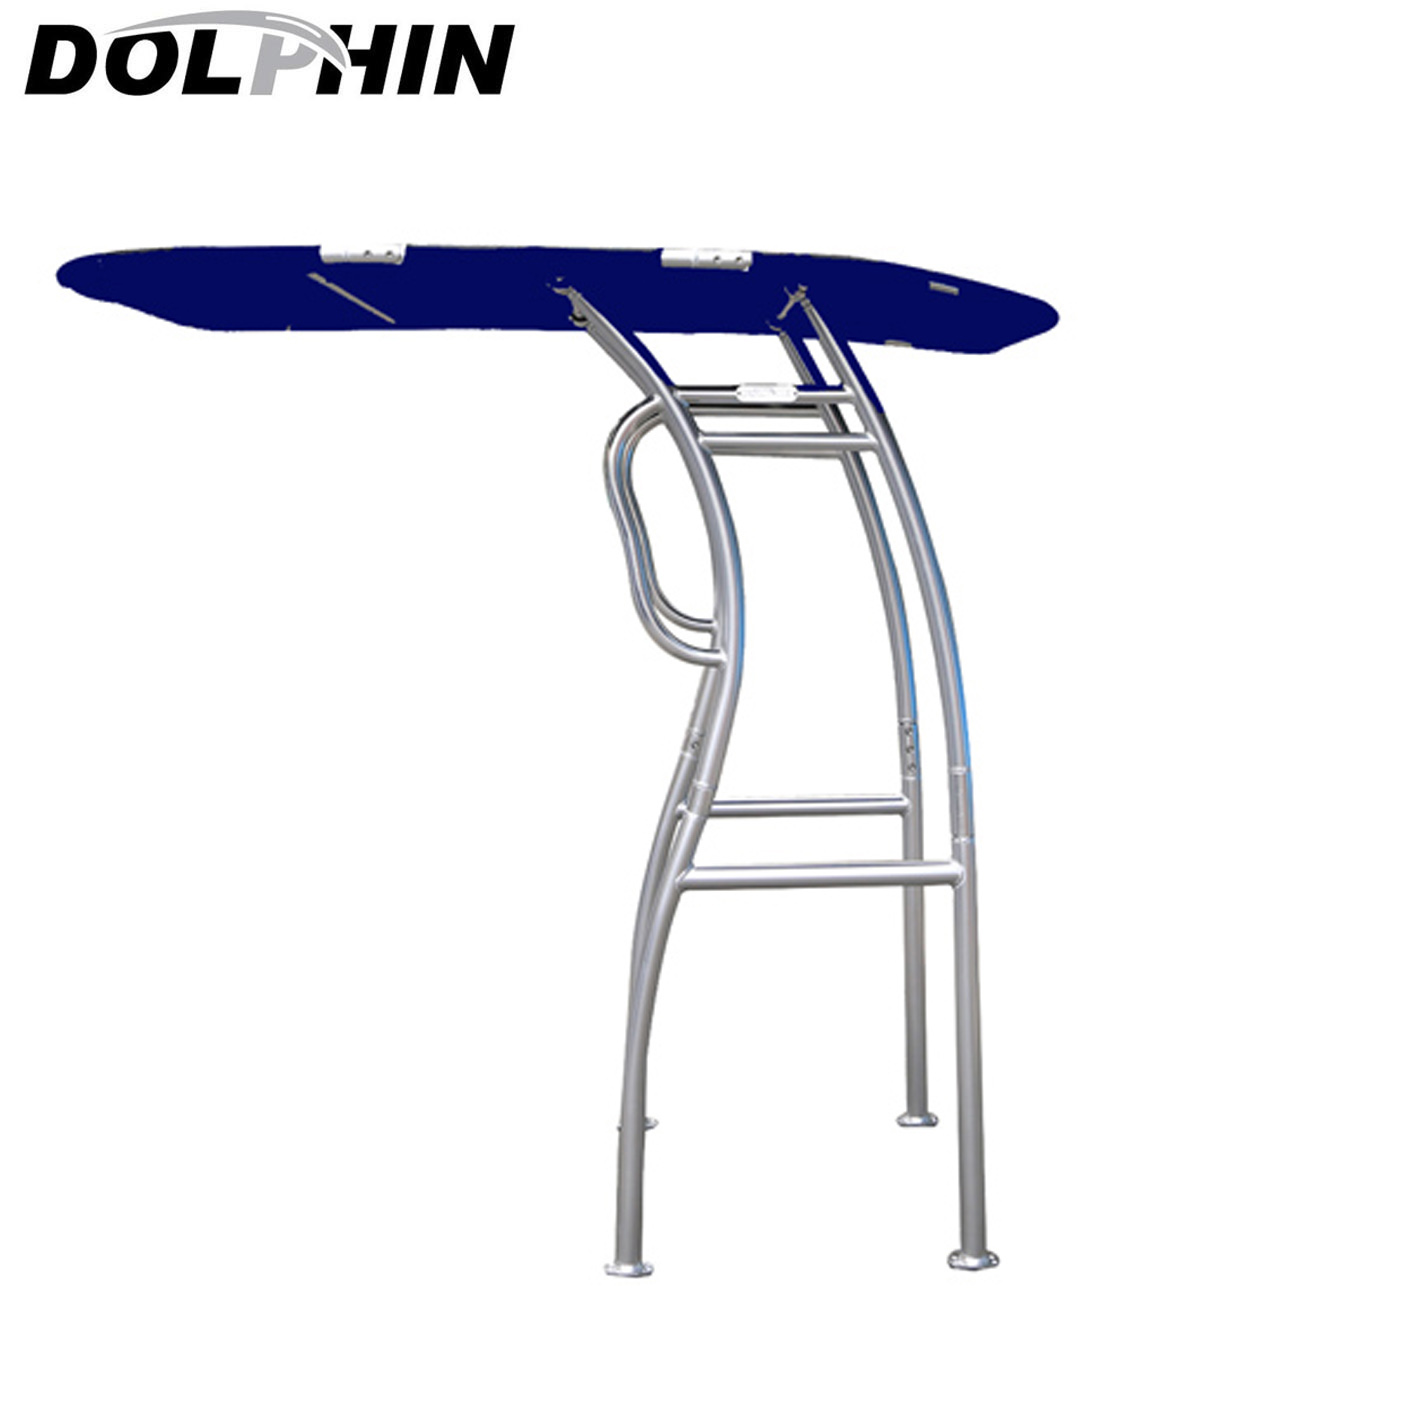 Dolphin Pro2 T Top Anodized Frame Blue canopy plus quick release knobs + antenna bracket